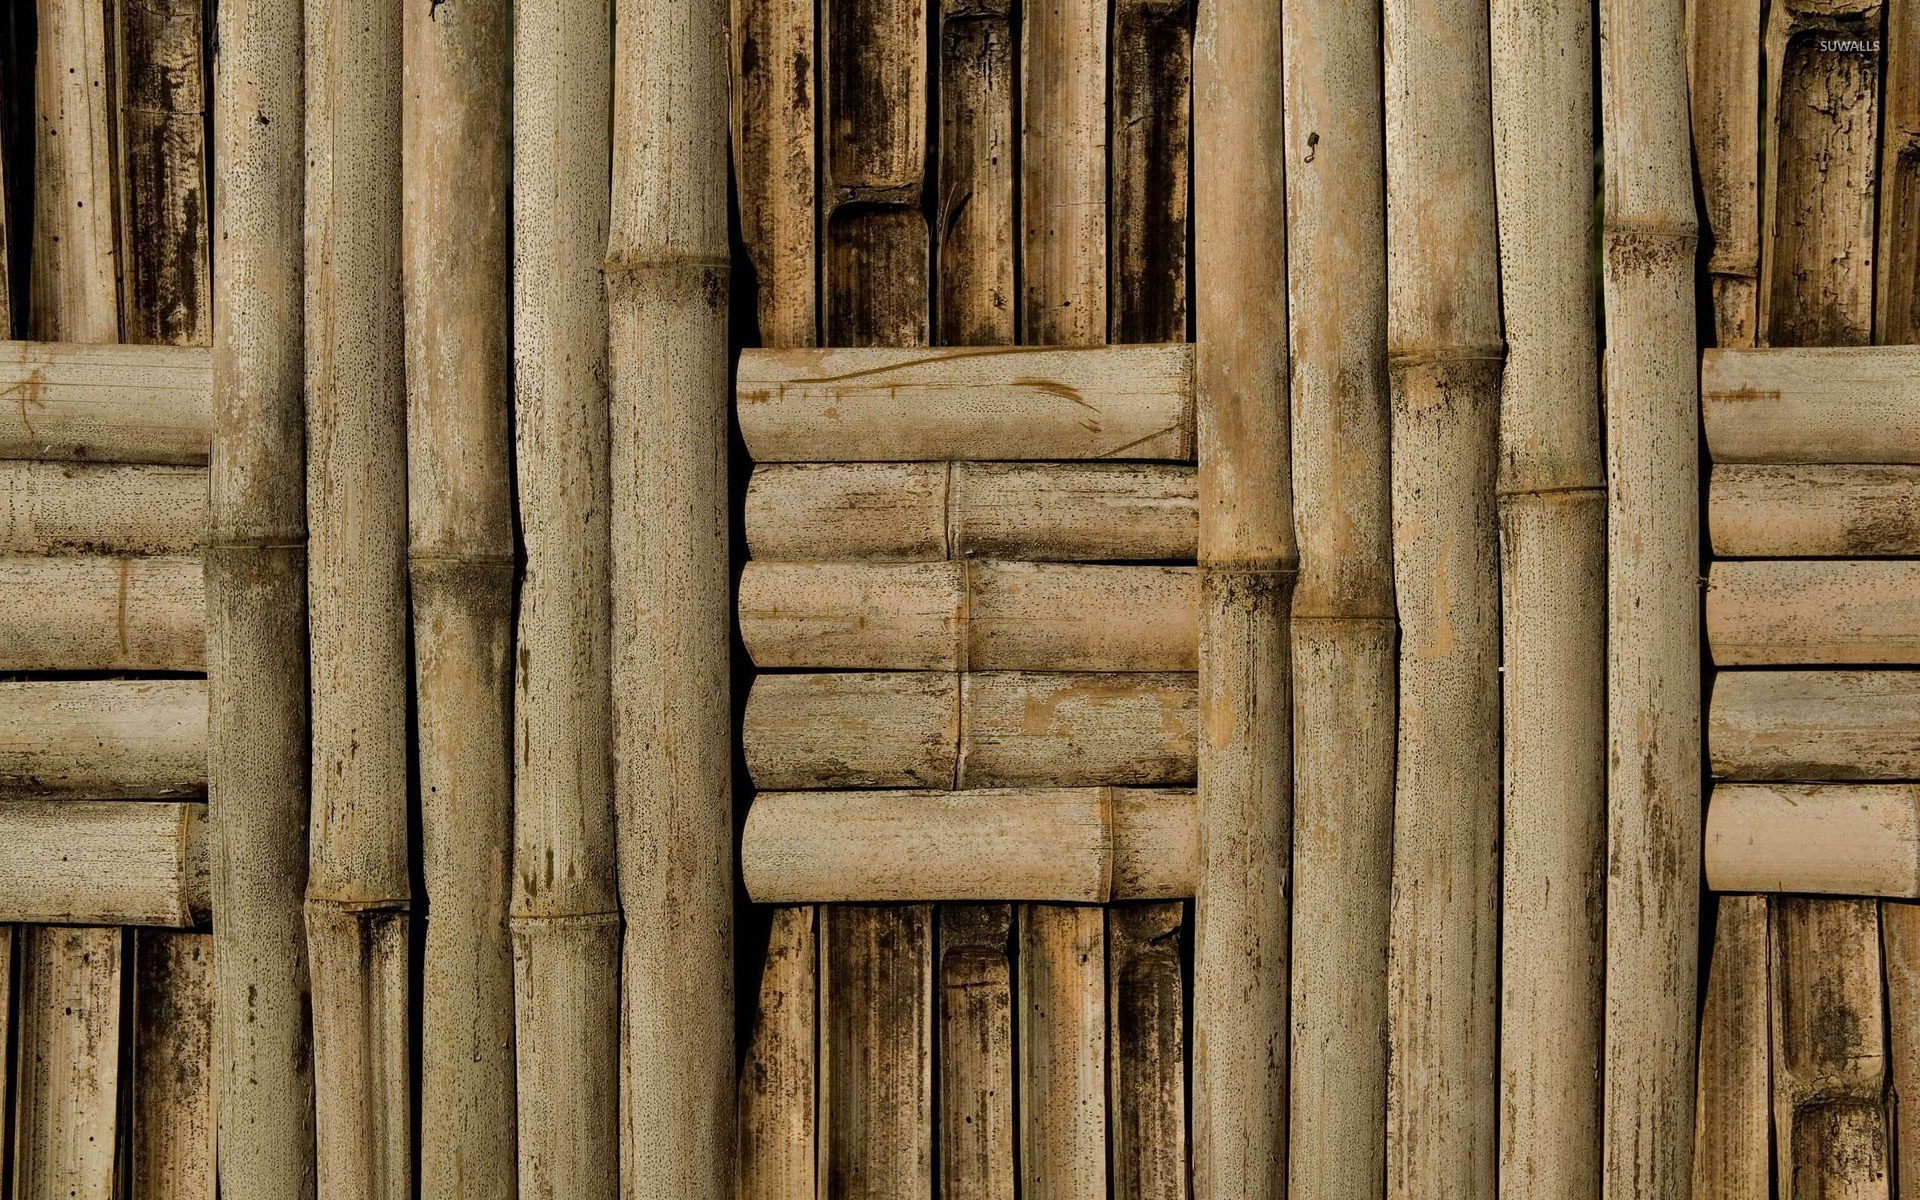 Bamboo wall wallpaper photography wallpapers 22309 for Bamboo wallpaper for walls